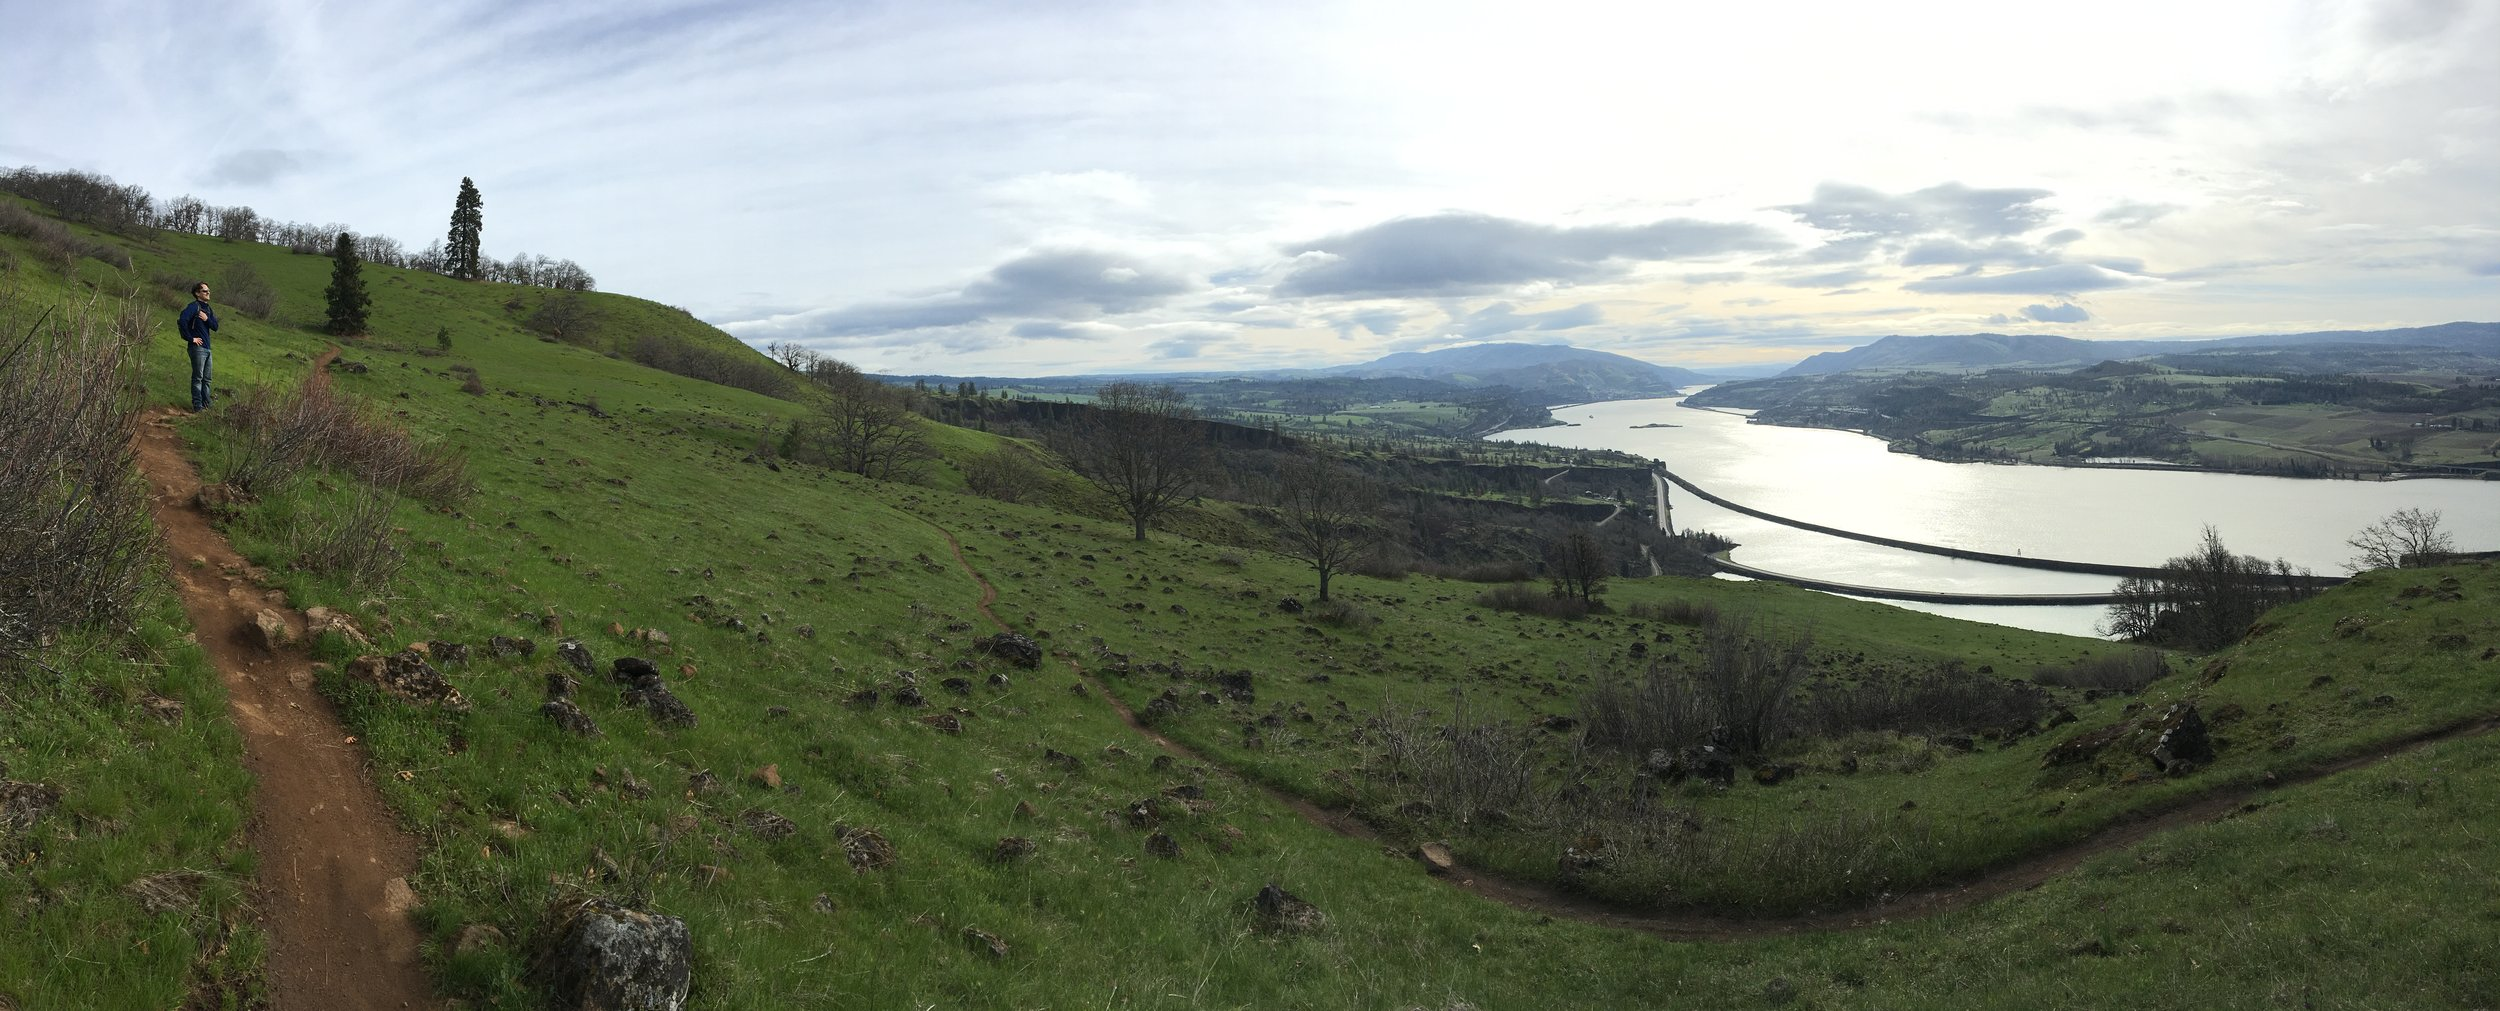 Hiking up the Labyrinth Loop overlooking the Columbia River.